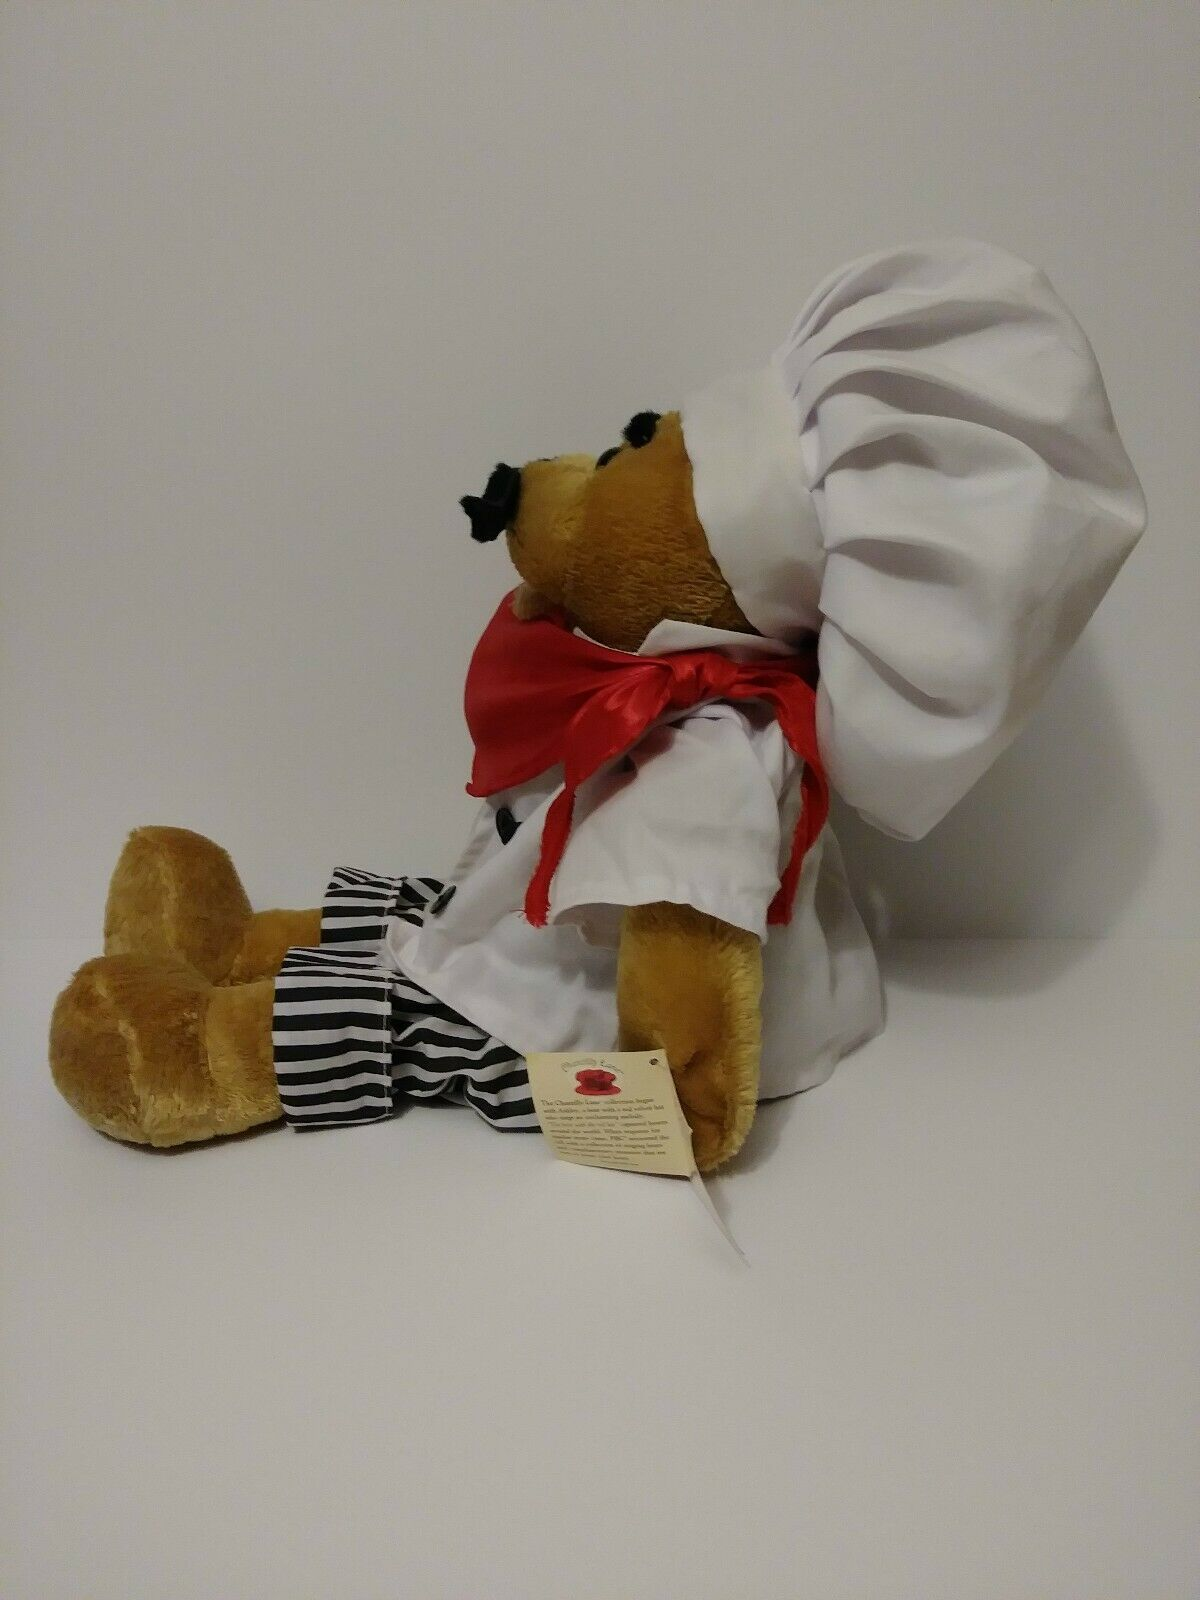 Chantilly Chantilly Chantilly Lane Musicals Animated Singing Teddy Bear  Alfrossoo  Sings That's Amore 863a48